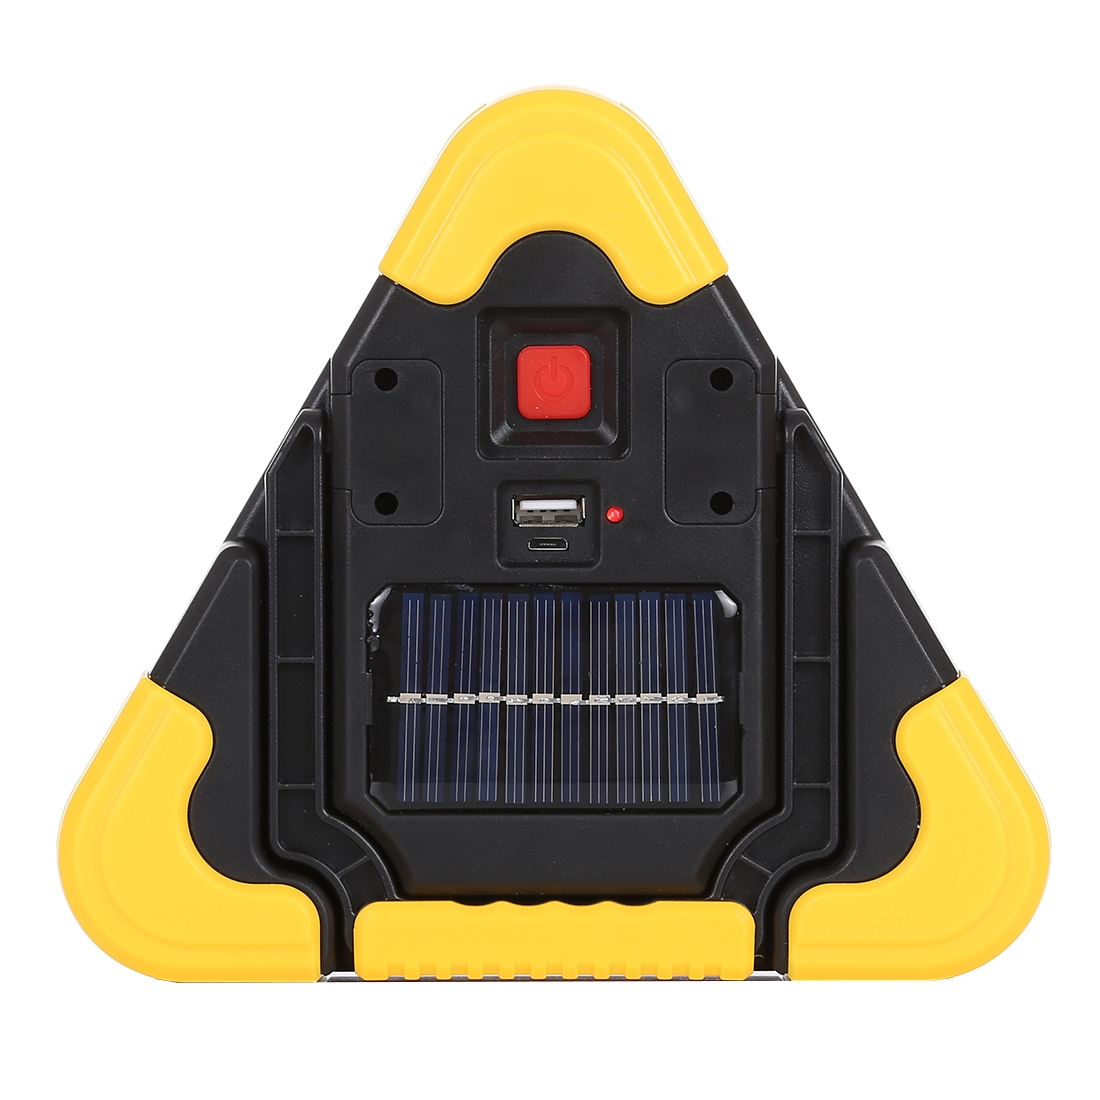 HB-6609R 10W Multi-function Portable Triangle Shape Solar Powered COB LED Work Light, 500 LM Outdoor Emergency Warning Light with Holder & Solar Panel for Mountaineering, Mined Underground, Fishing, Repair (White Light)